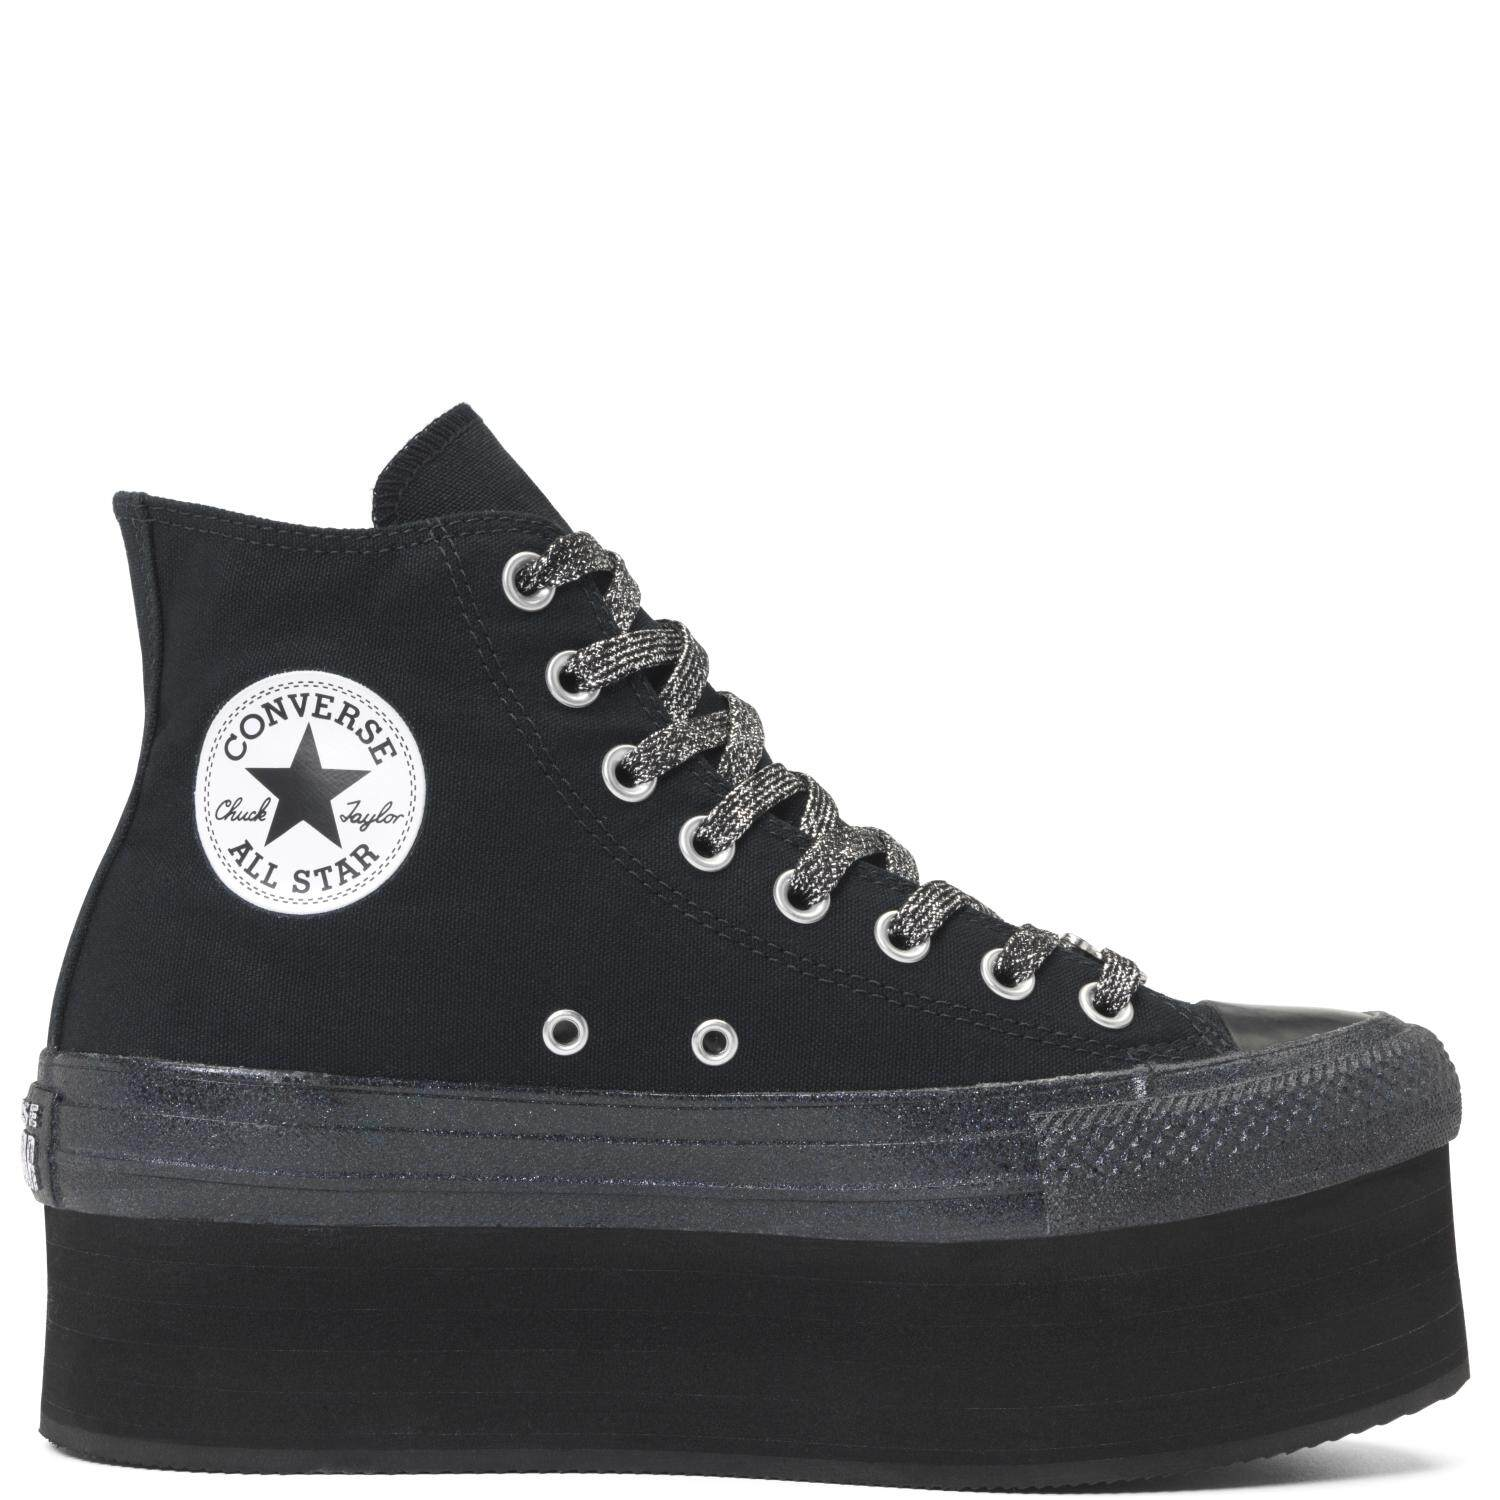 Designers Converse All Star Hi Platform Black/Egret For Women Selling Well